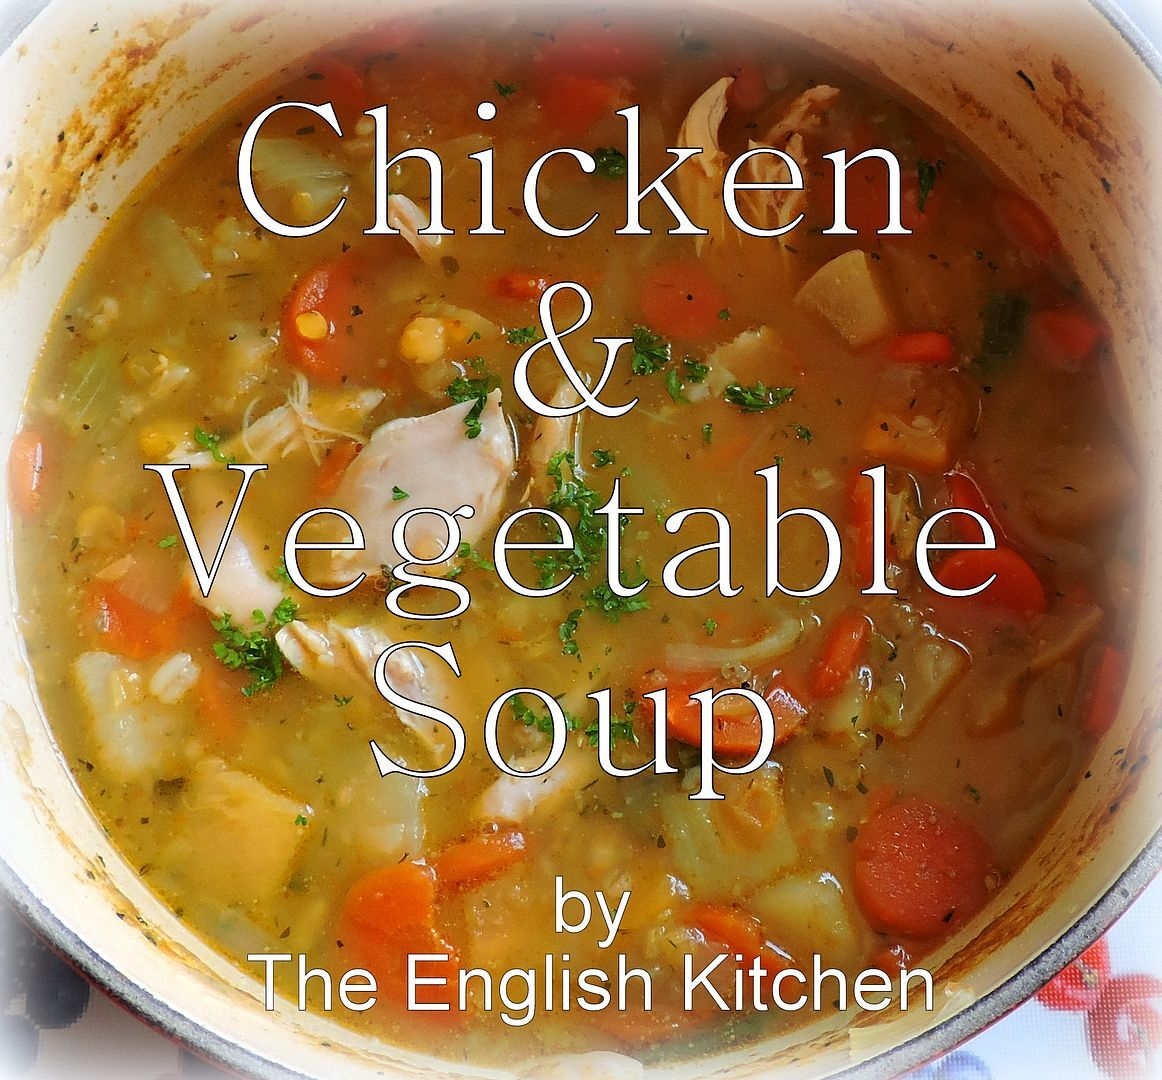 Tasty Chicken and Vegetable Soup